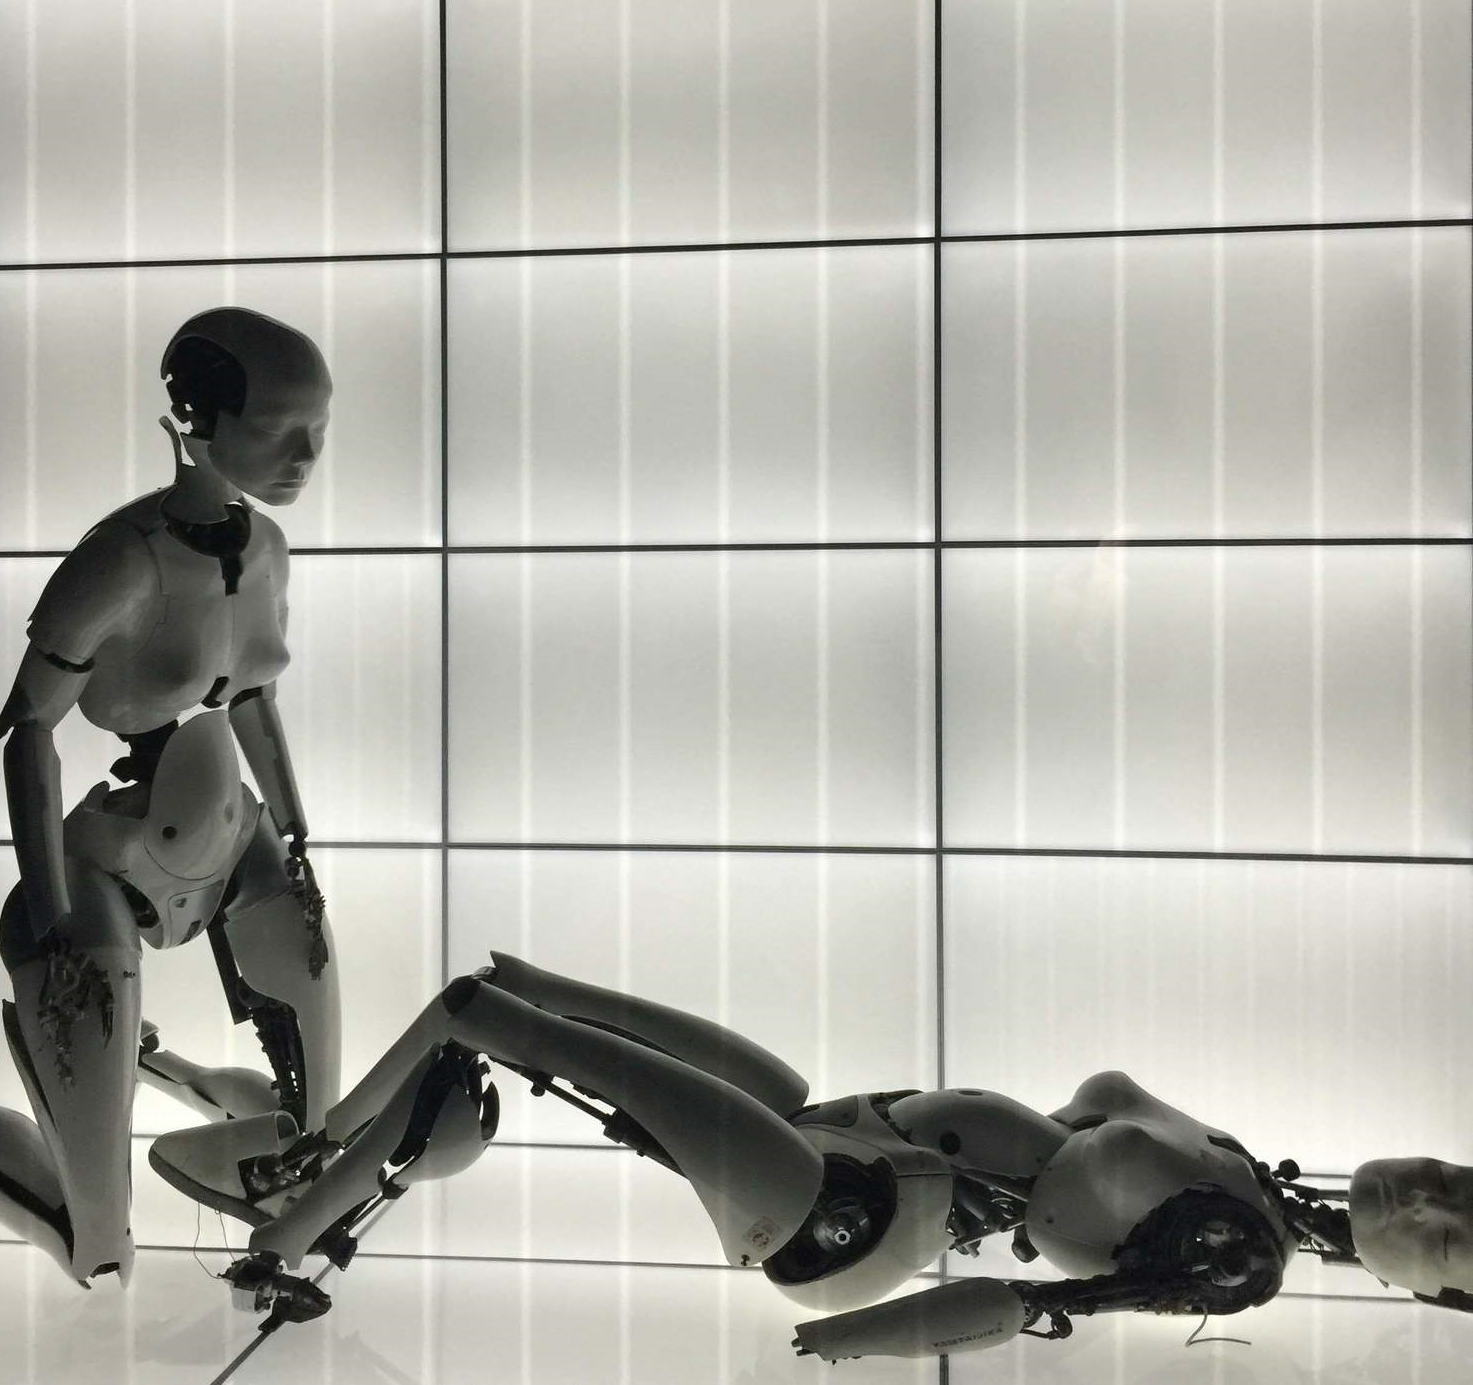 """Robot lovers with Björk facial features from the 1999 music video """" All is Full of Love ."""""""